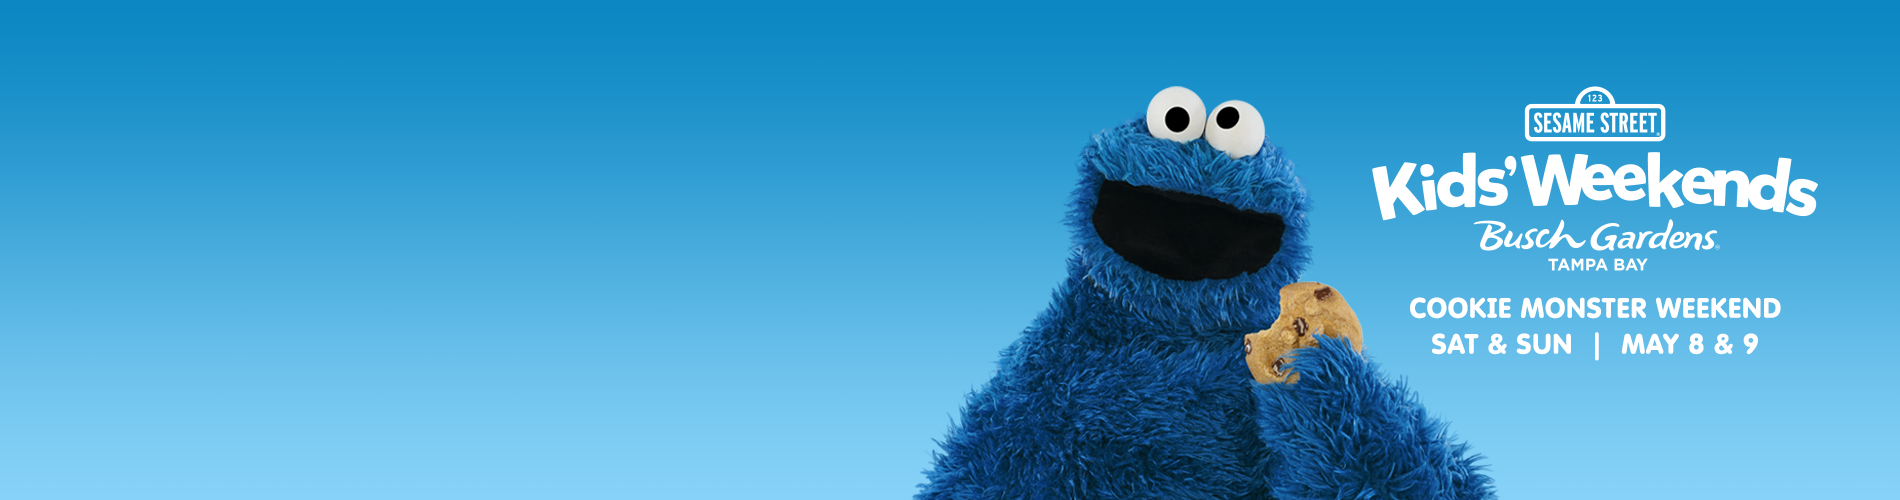 Cookie Monster from Sesame Street eating a Cookie